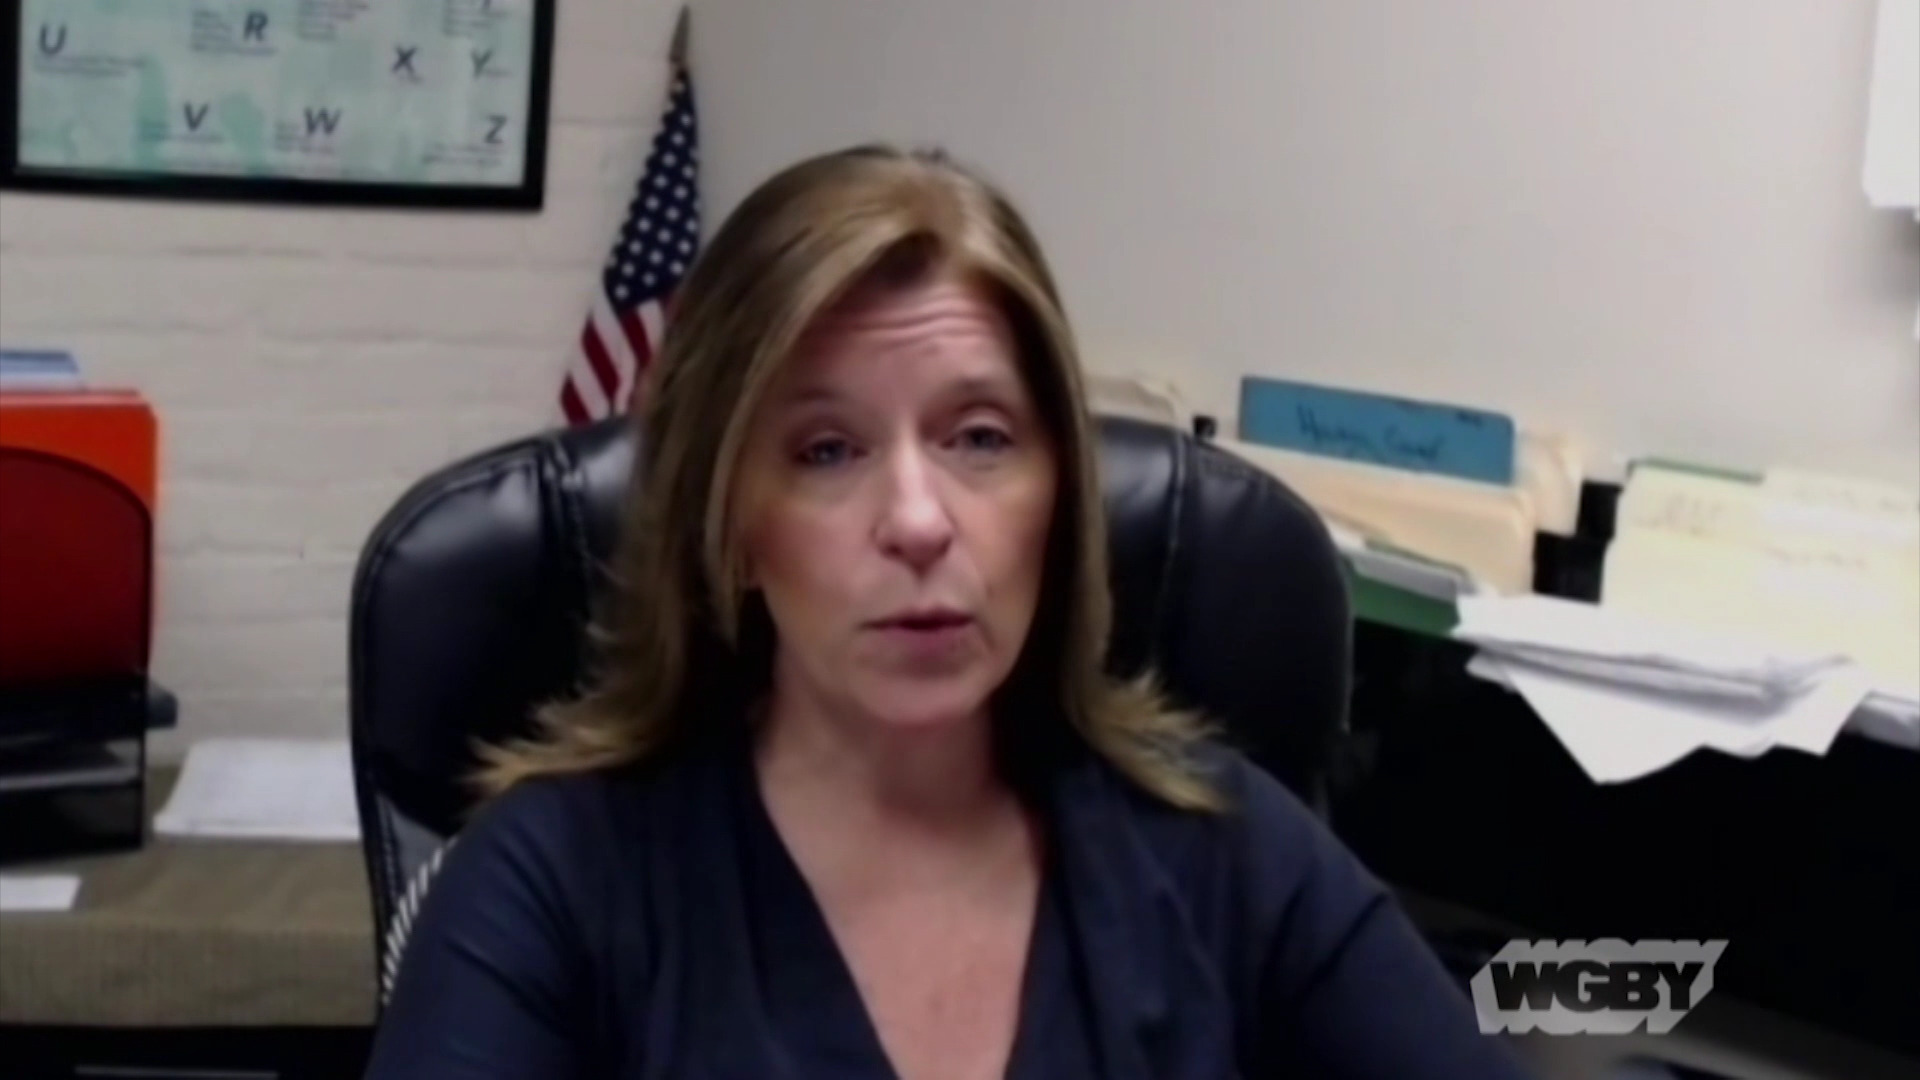 WATCH: Public Health Director Meredith O'Leary explains how Northampton collaborating with surrounding towns to conduct COVID-19 contact tracing.